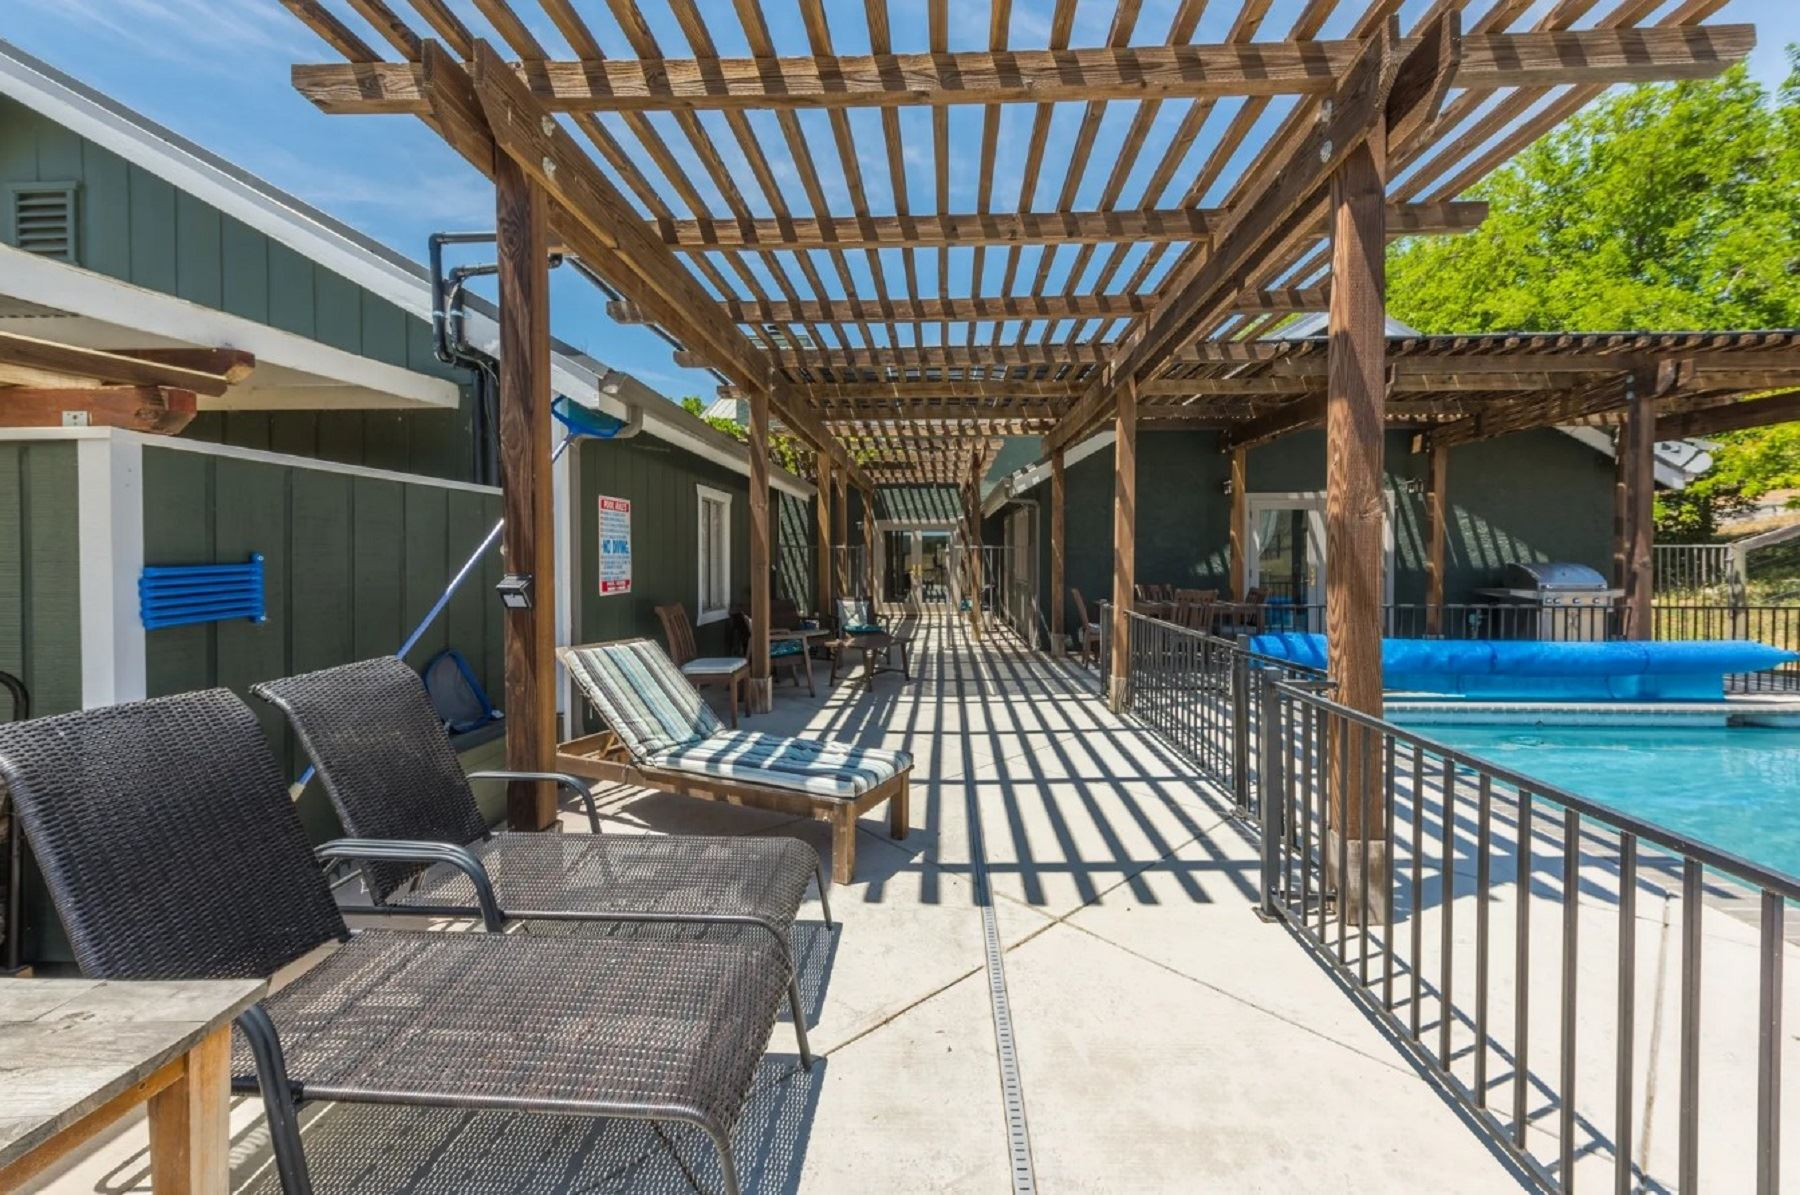 Harvest Ridge Ranch - Exterior - View of Lounge Chairs by the Pool